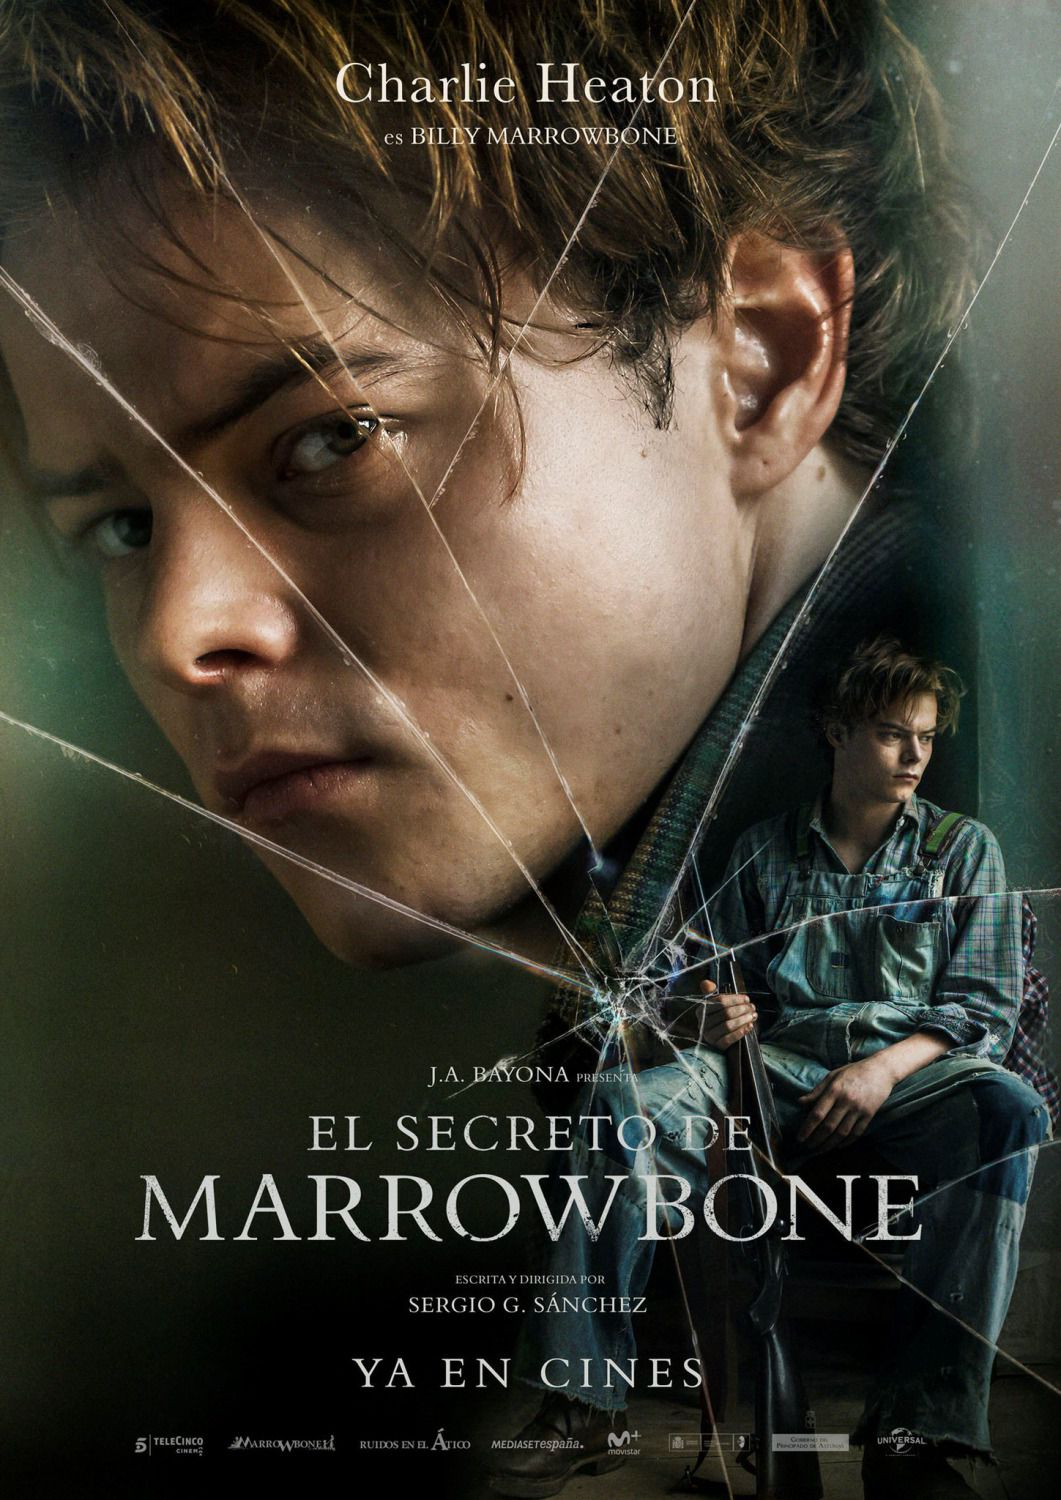 Charlie Heaton is Billy Marrowbone